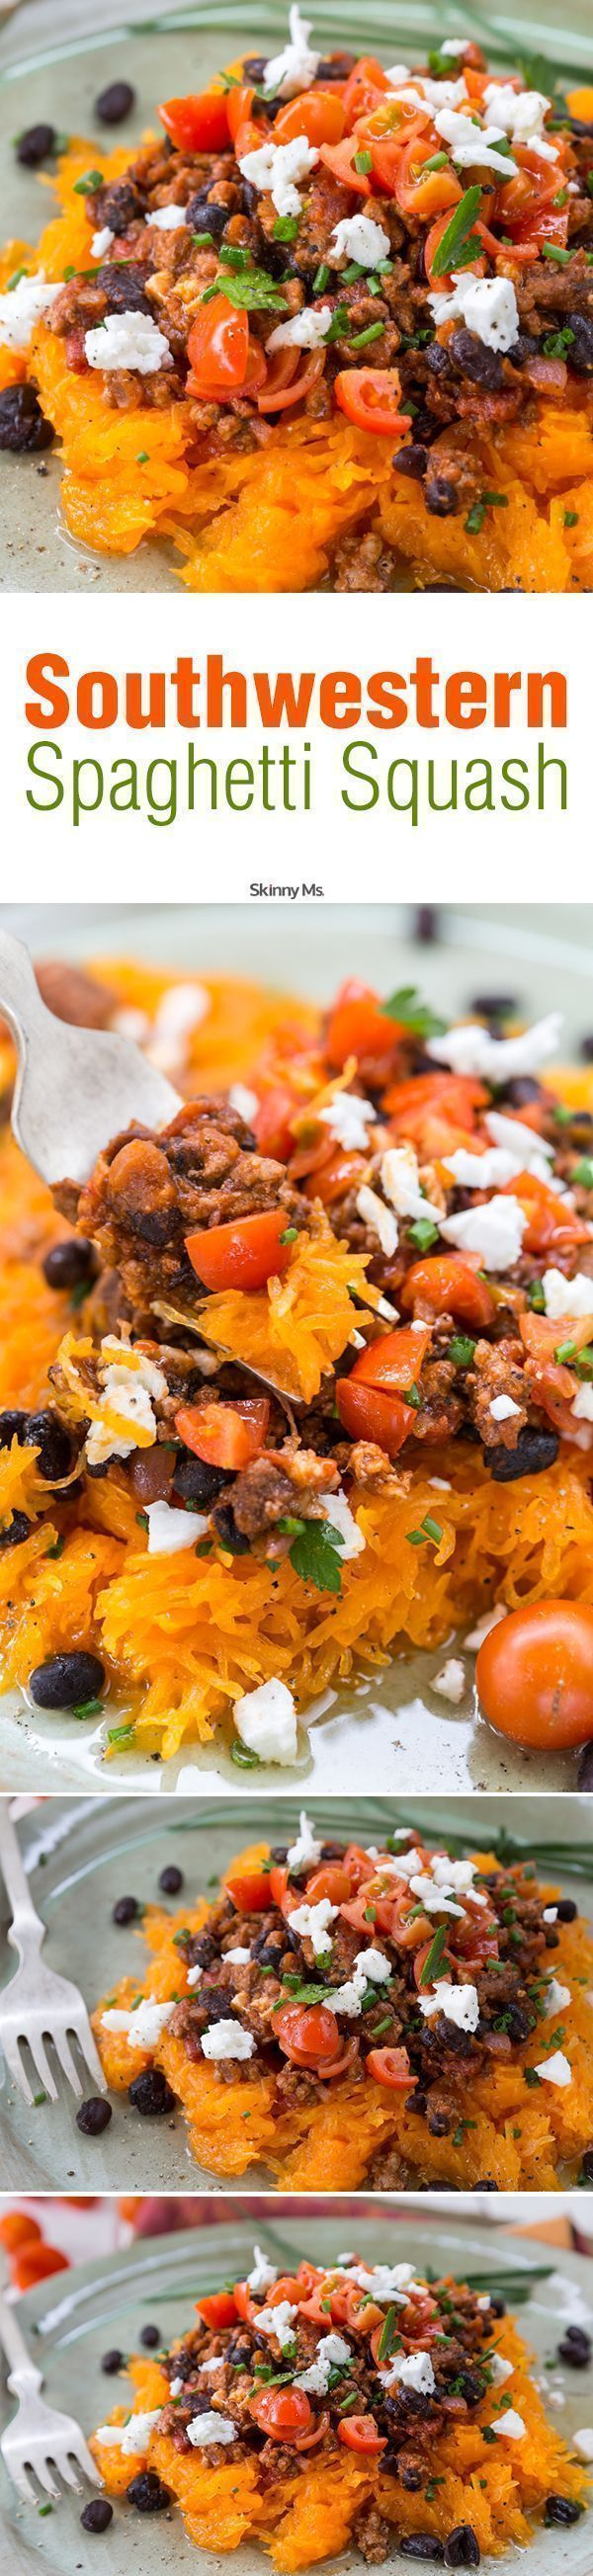 Southwestern Spaghetti Squash is a delicious way to cut carbs and still feel satiated!